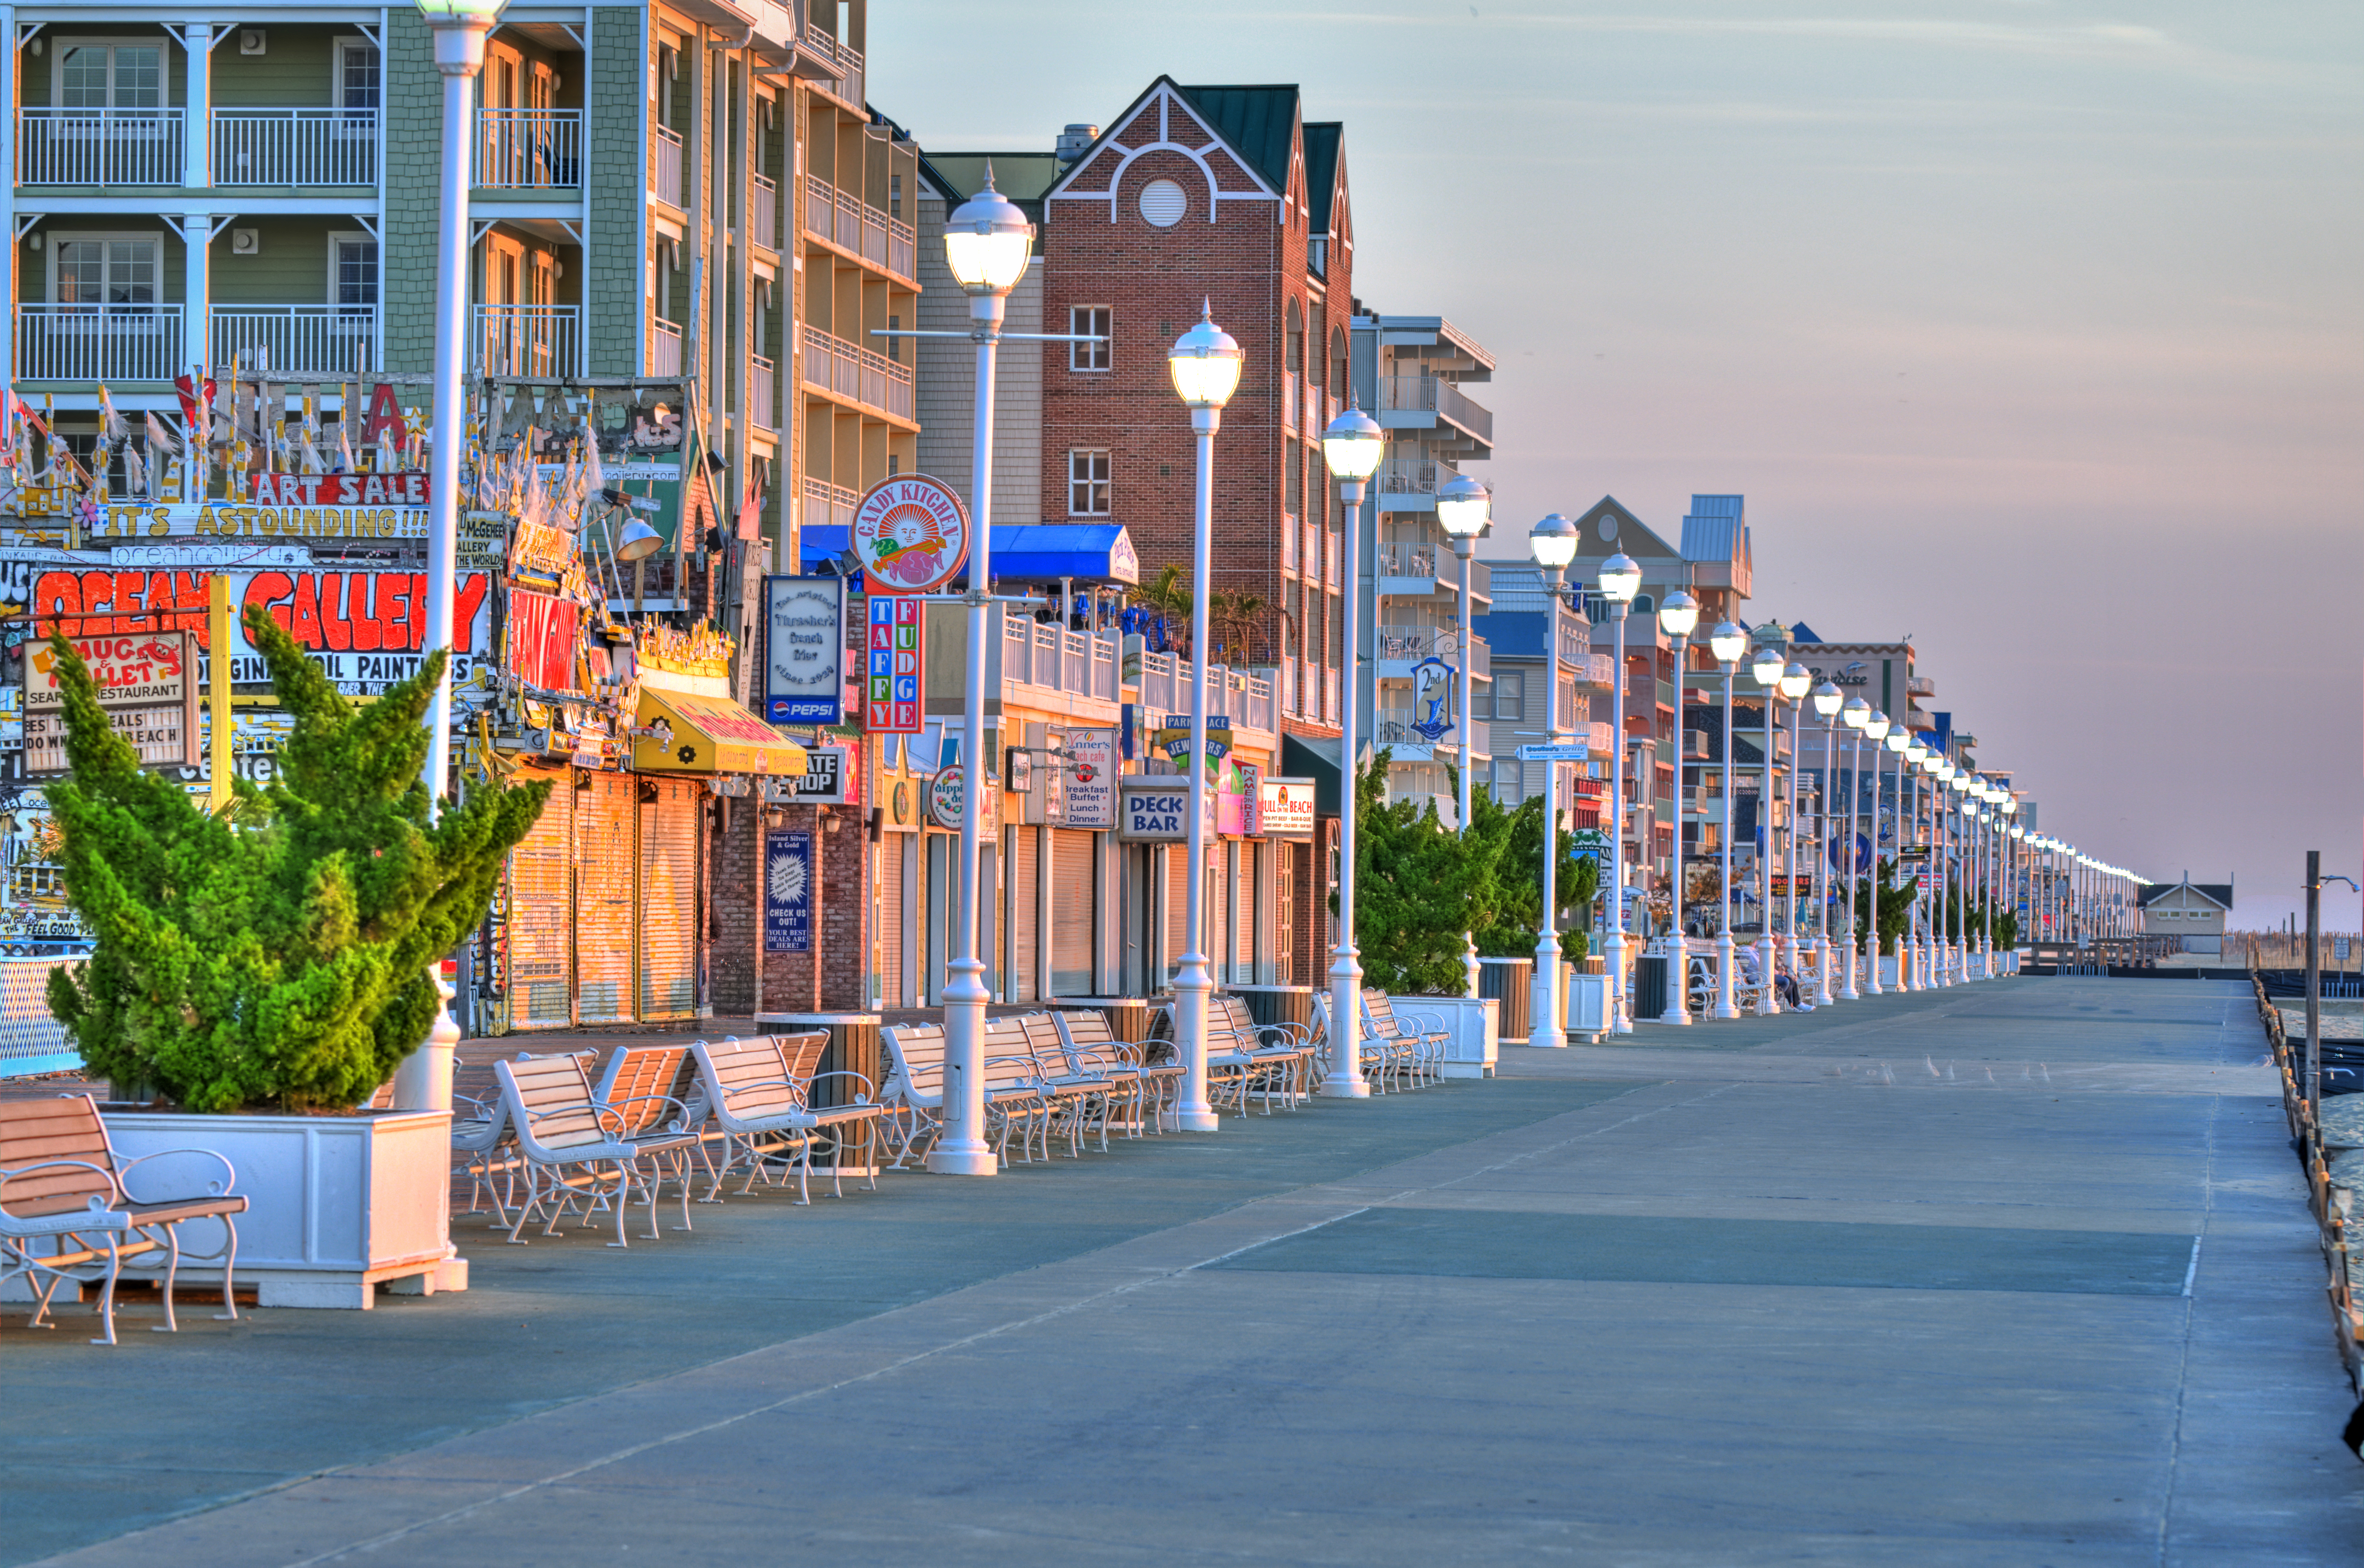 about spindrift motel located in ocean city md has affordable rates